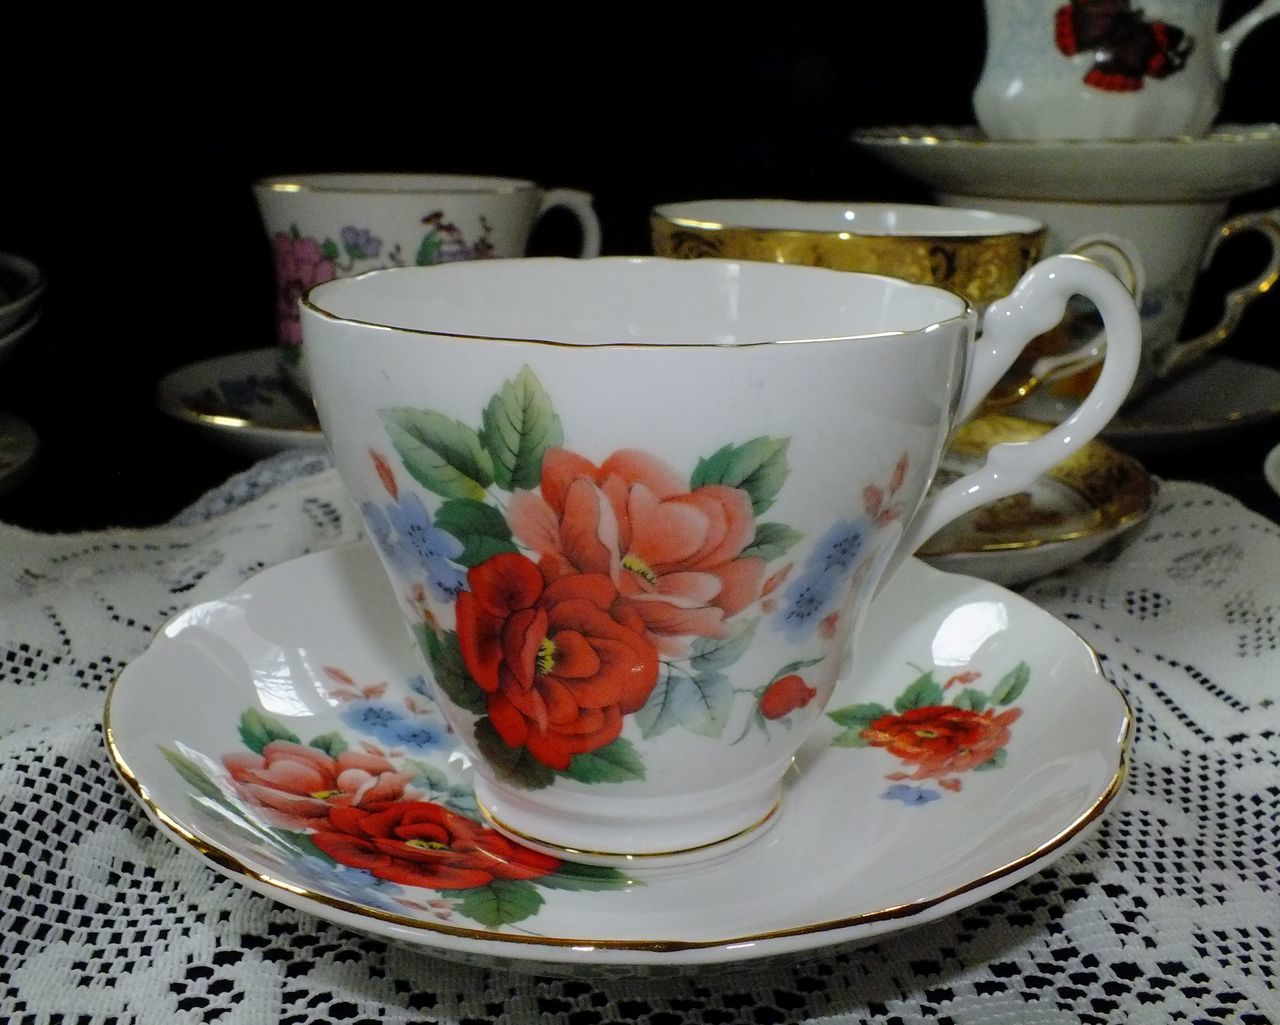 Afternoon Tea Afternoon Tea Time Collectibles Floral Tea Cup Rose Tea Rose Tea Cup Roses Still Life Still Life Photography StillLife StillLifePhotography Tea Tea Cup Tea Cups Tea Party Tea Time Teatime Vintage Vintage China Vintage Tea Vintage Tea Cups Vintage Teacups